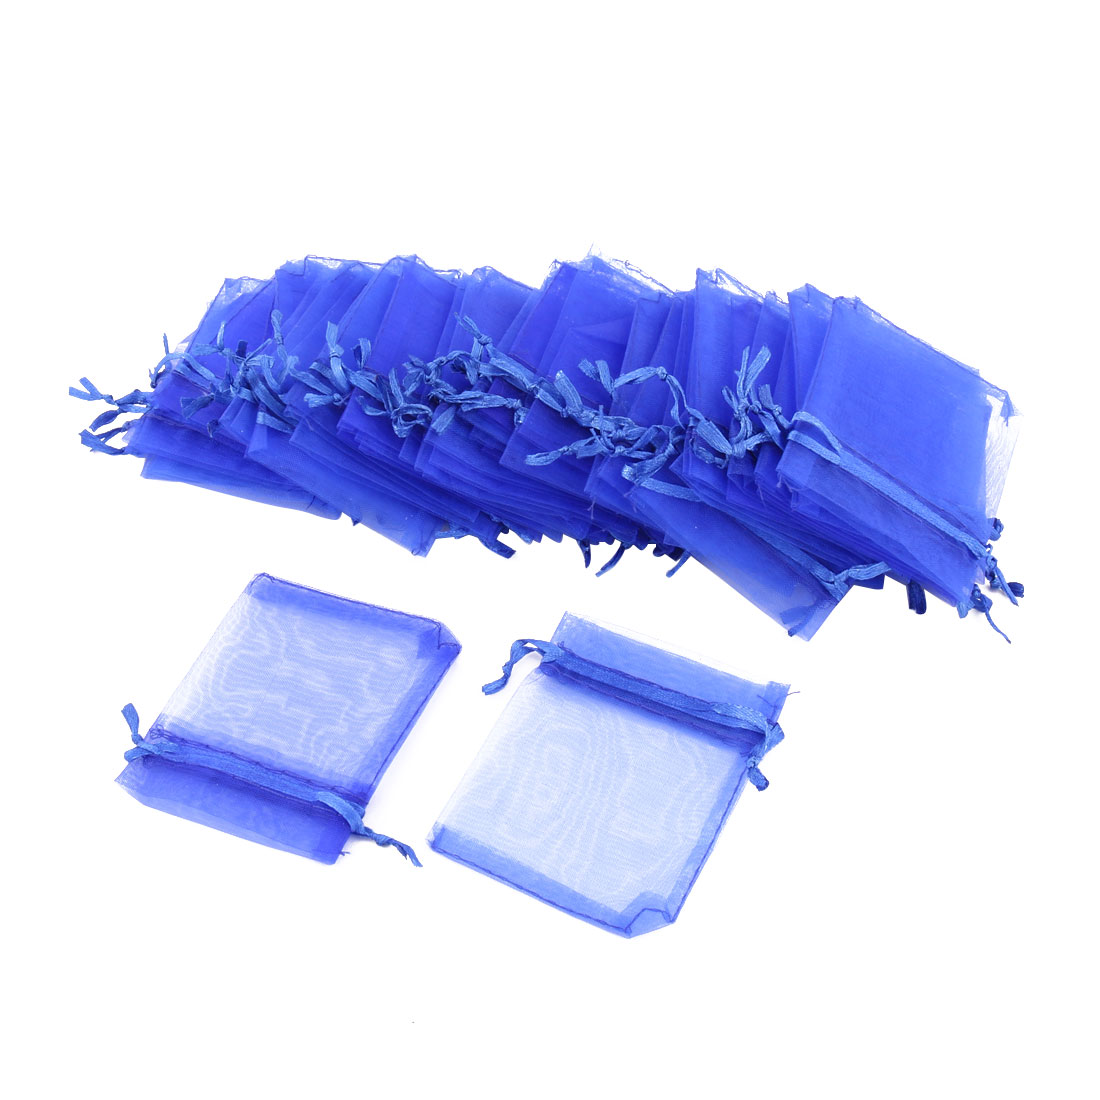 Candy Jewelry Packing Pouches Gift Organza Bags Blue 50 Pcs